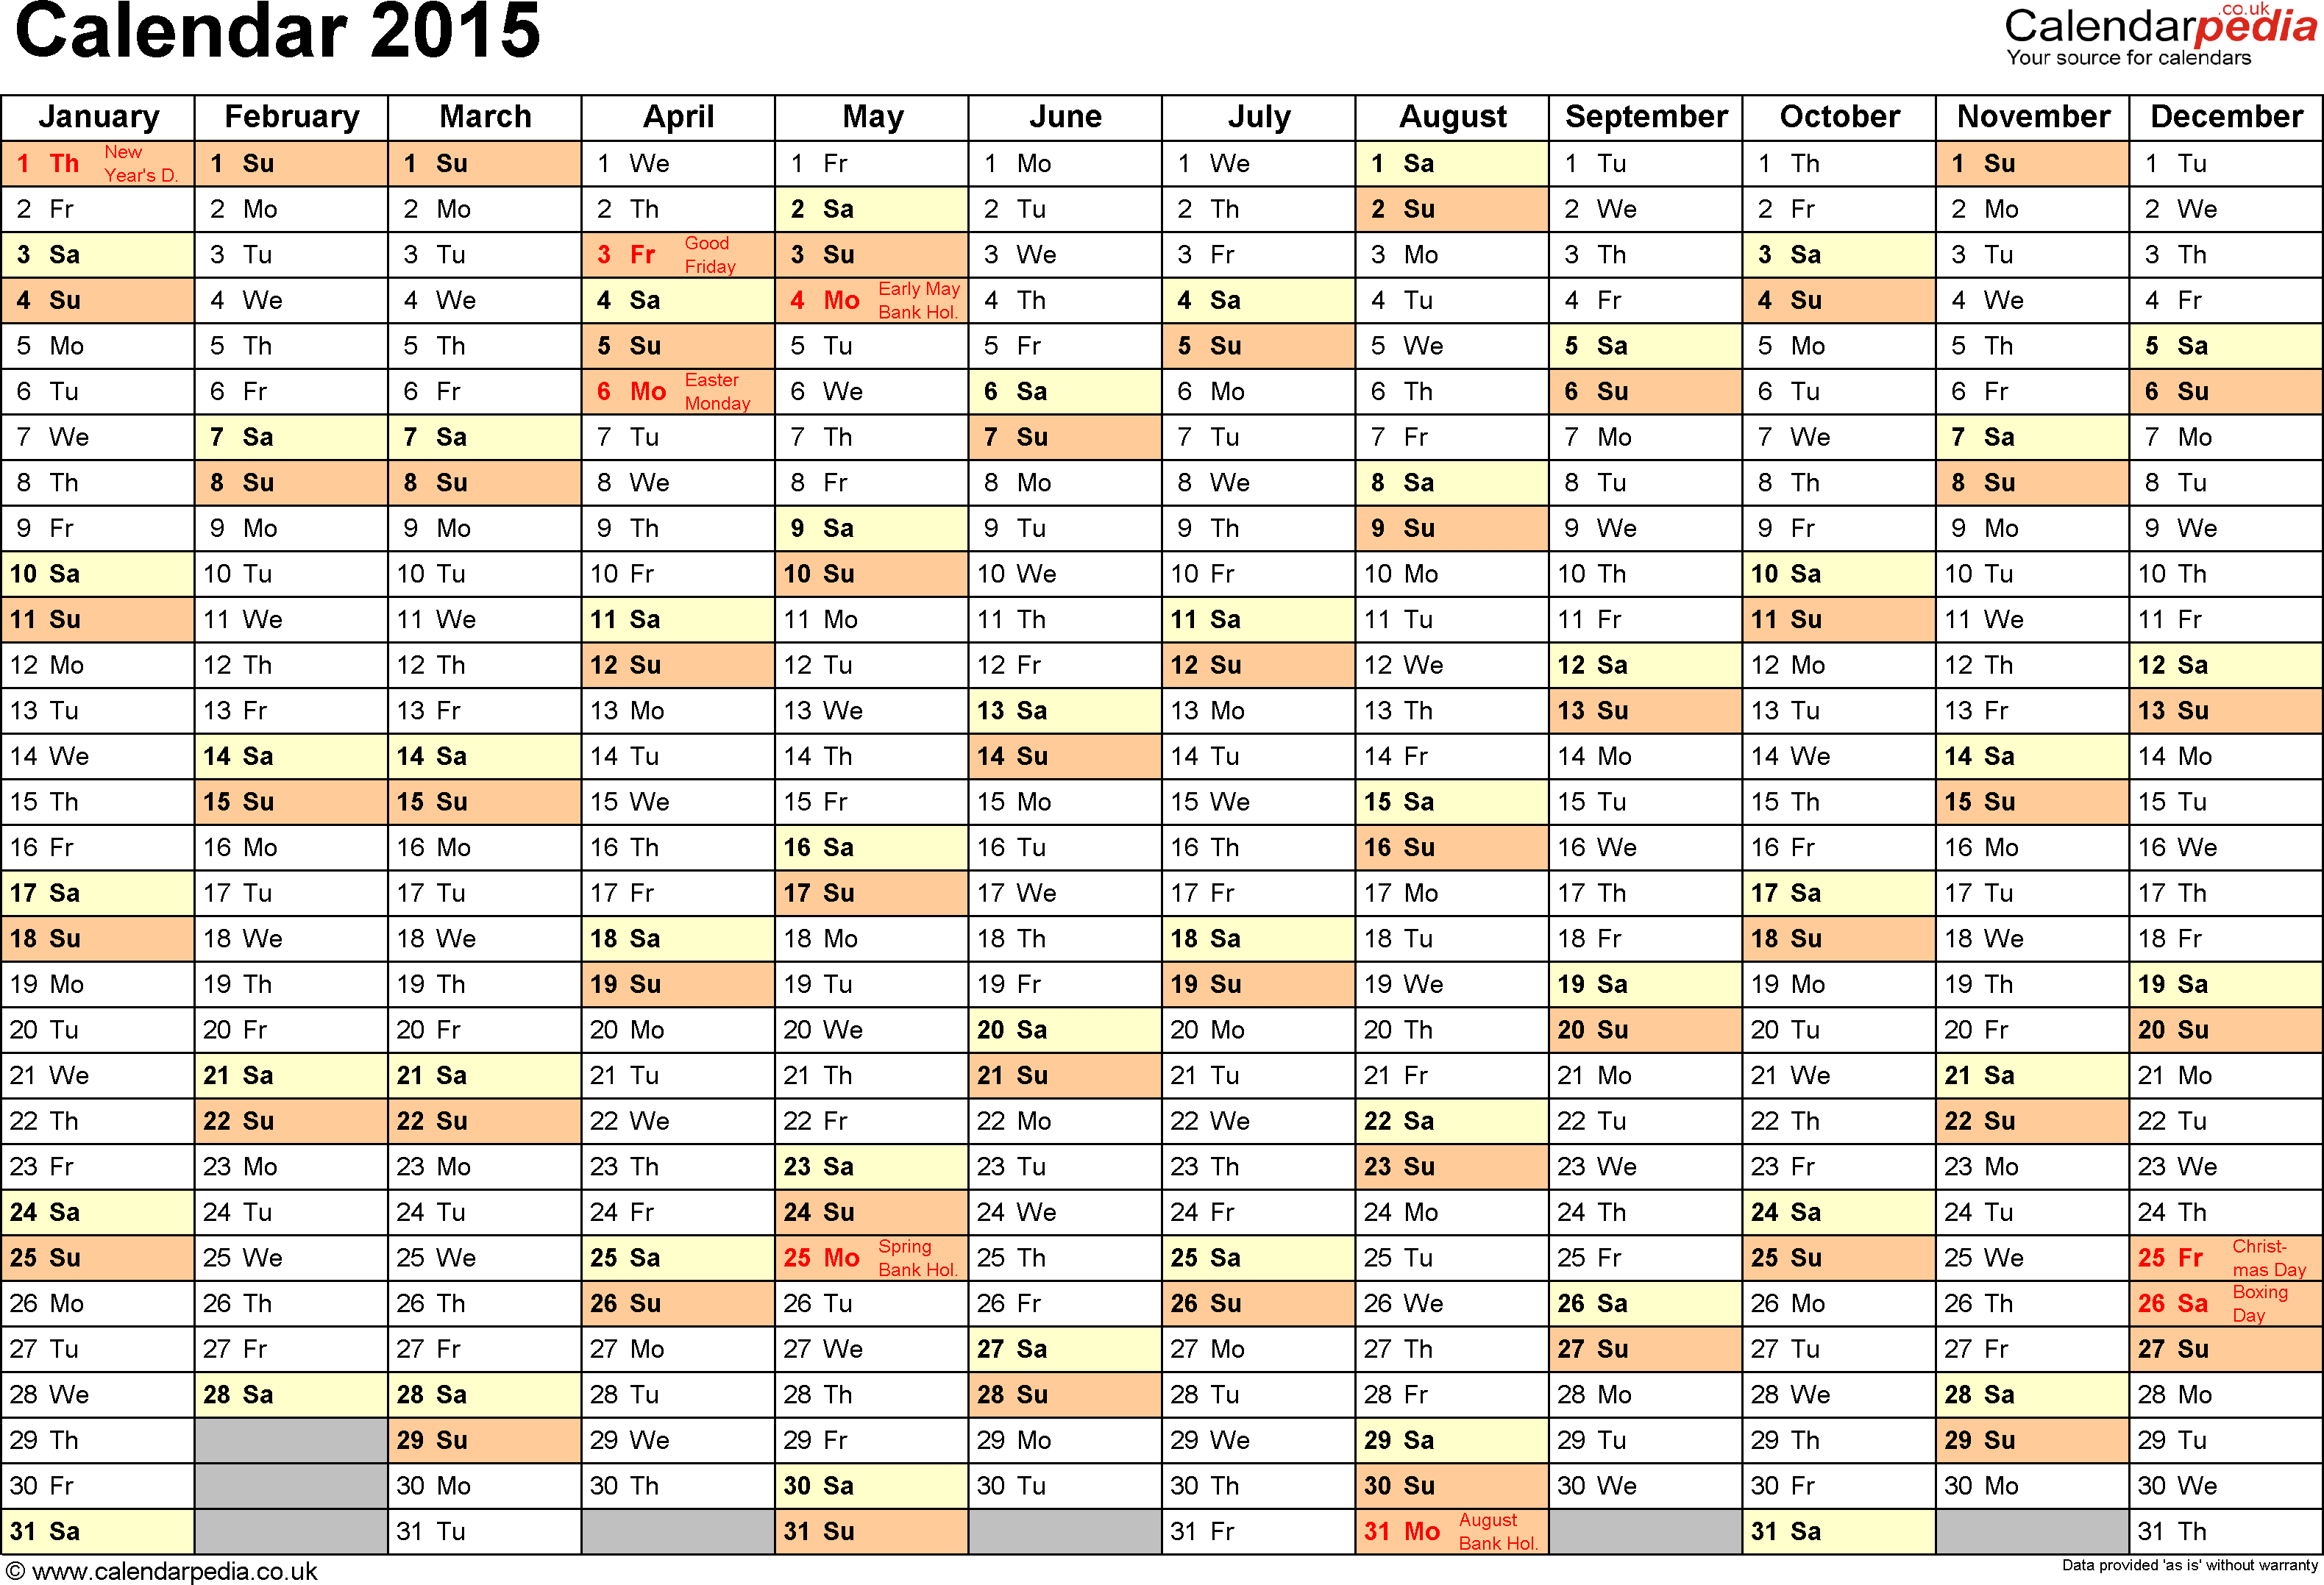 Template 2: Yearly calendar 2015 as Excel template, landscape orientation, A4, 1 page, months horizontally, days vertically, with UK bank holidays and week numbers